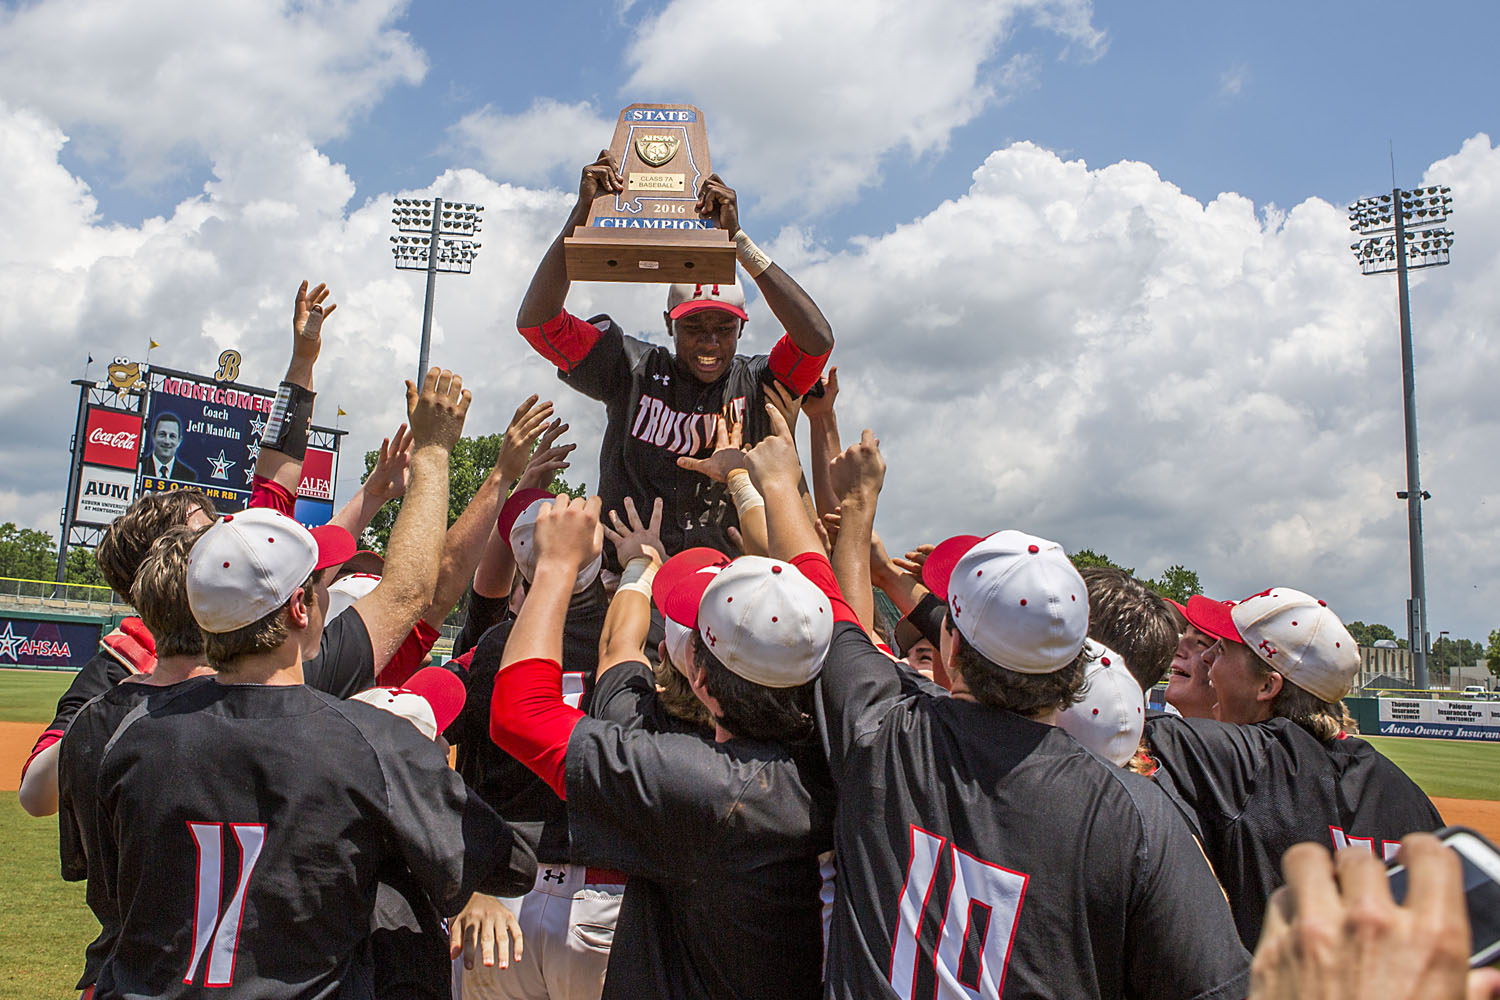 Monday parade to honor Trussville baseball, wrestling and track teams